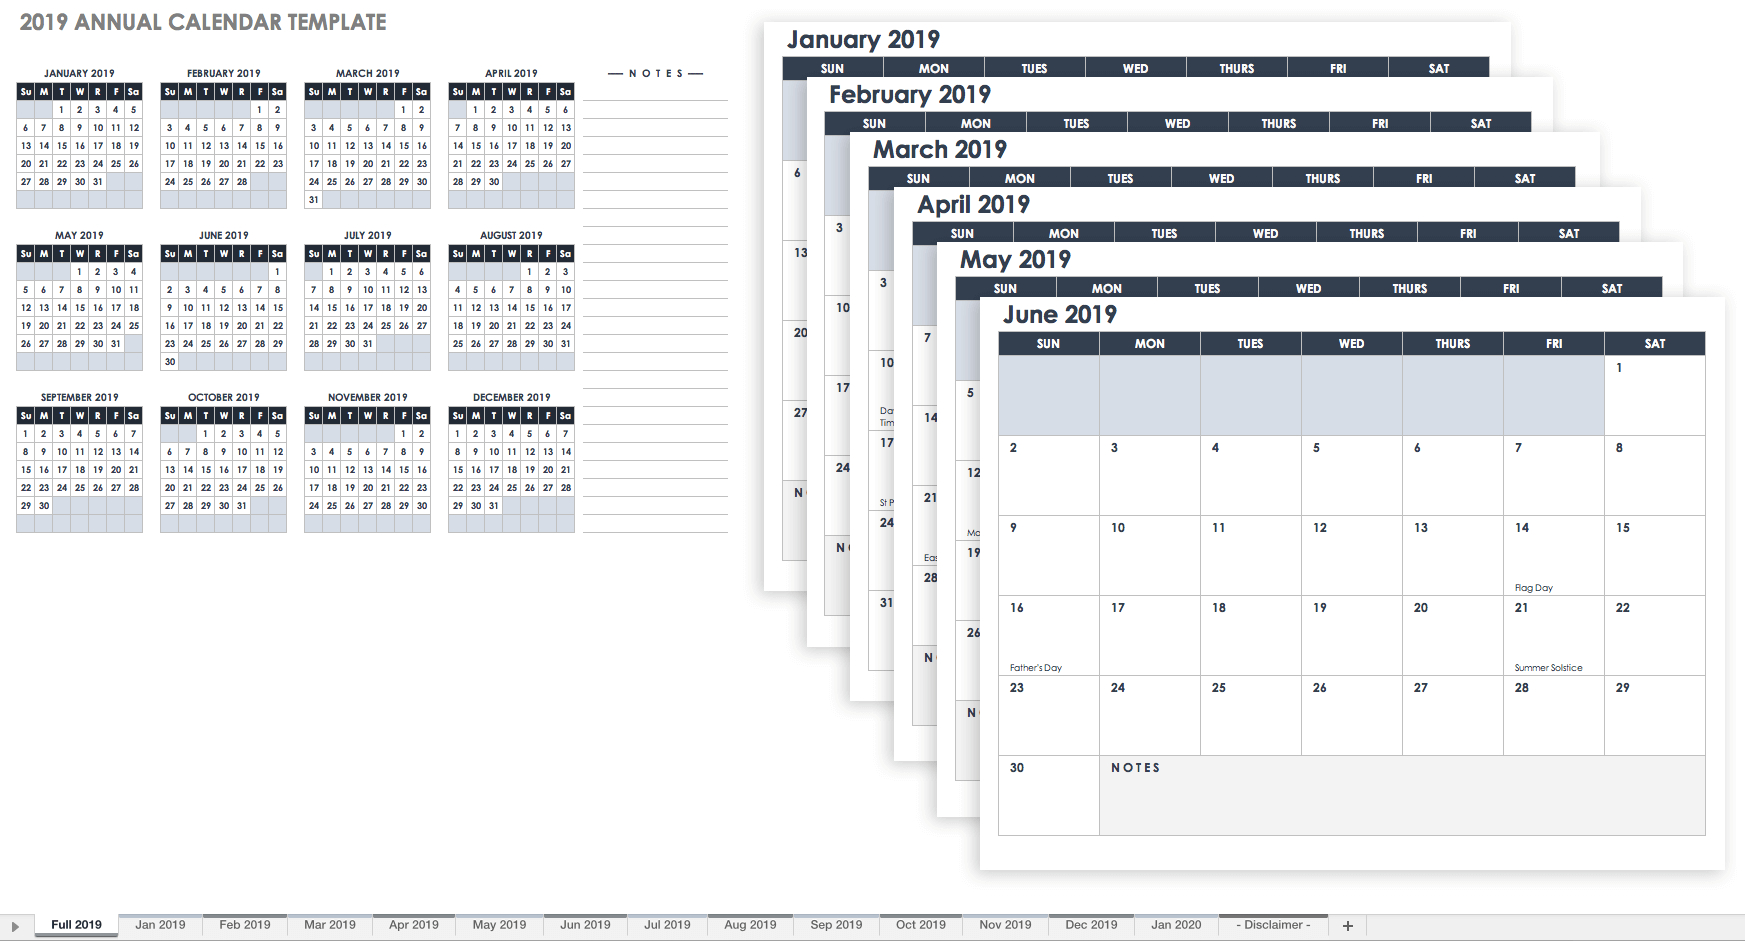 15 Free Monthly Calendar Templates | Smartsheet throughout Blank Calendar With Only Weekdays